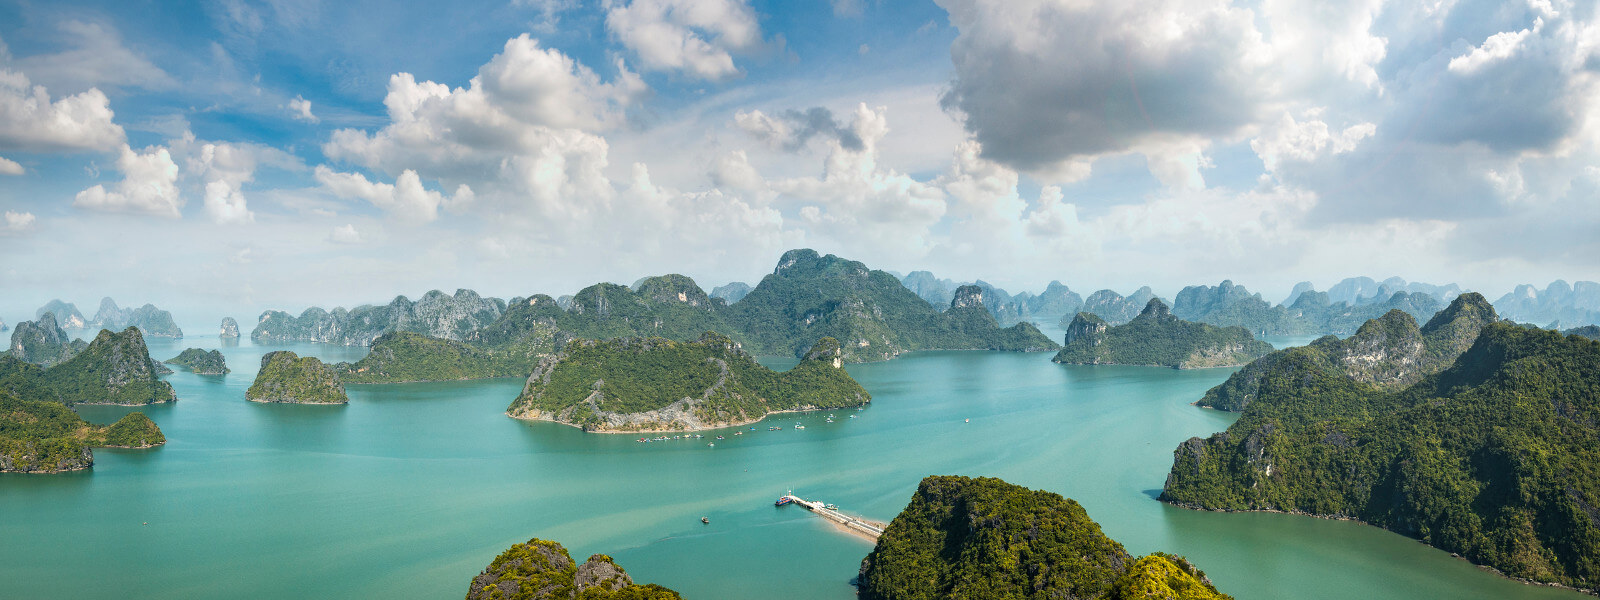 15 Best Places to See in Vietnam